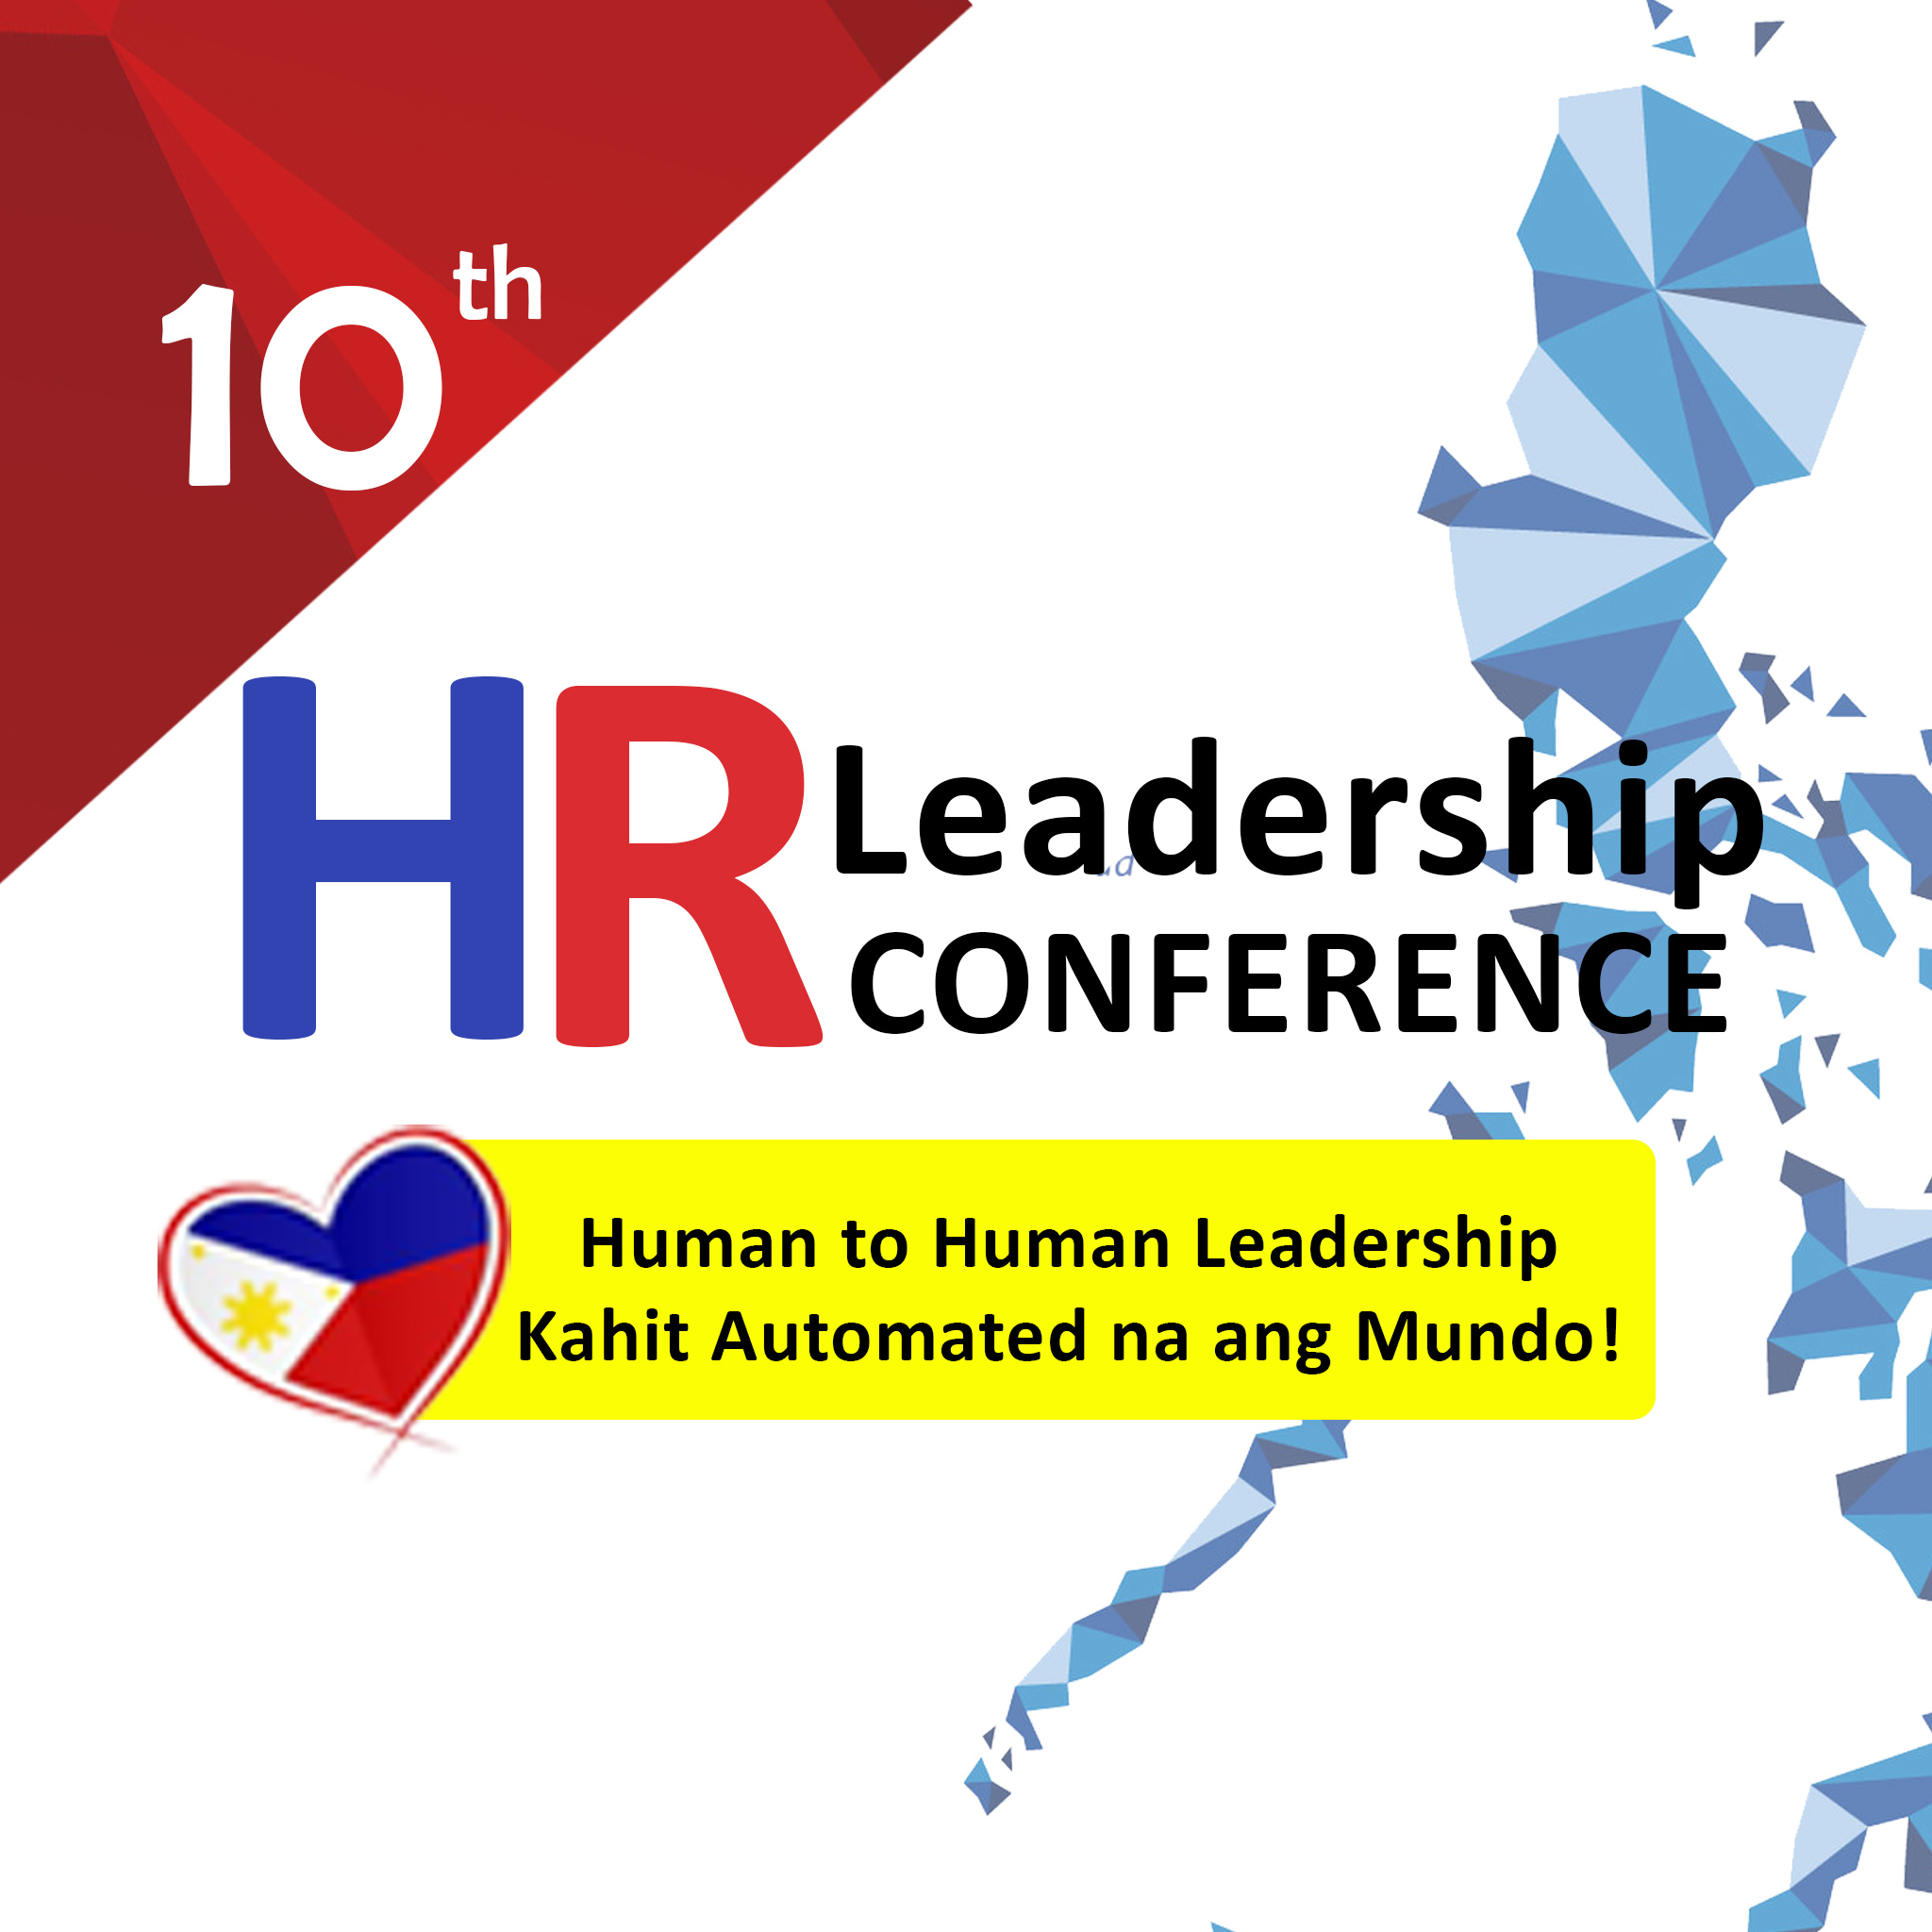 10th HR Leadership Conference 2020